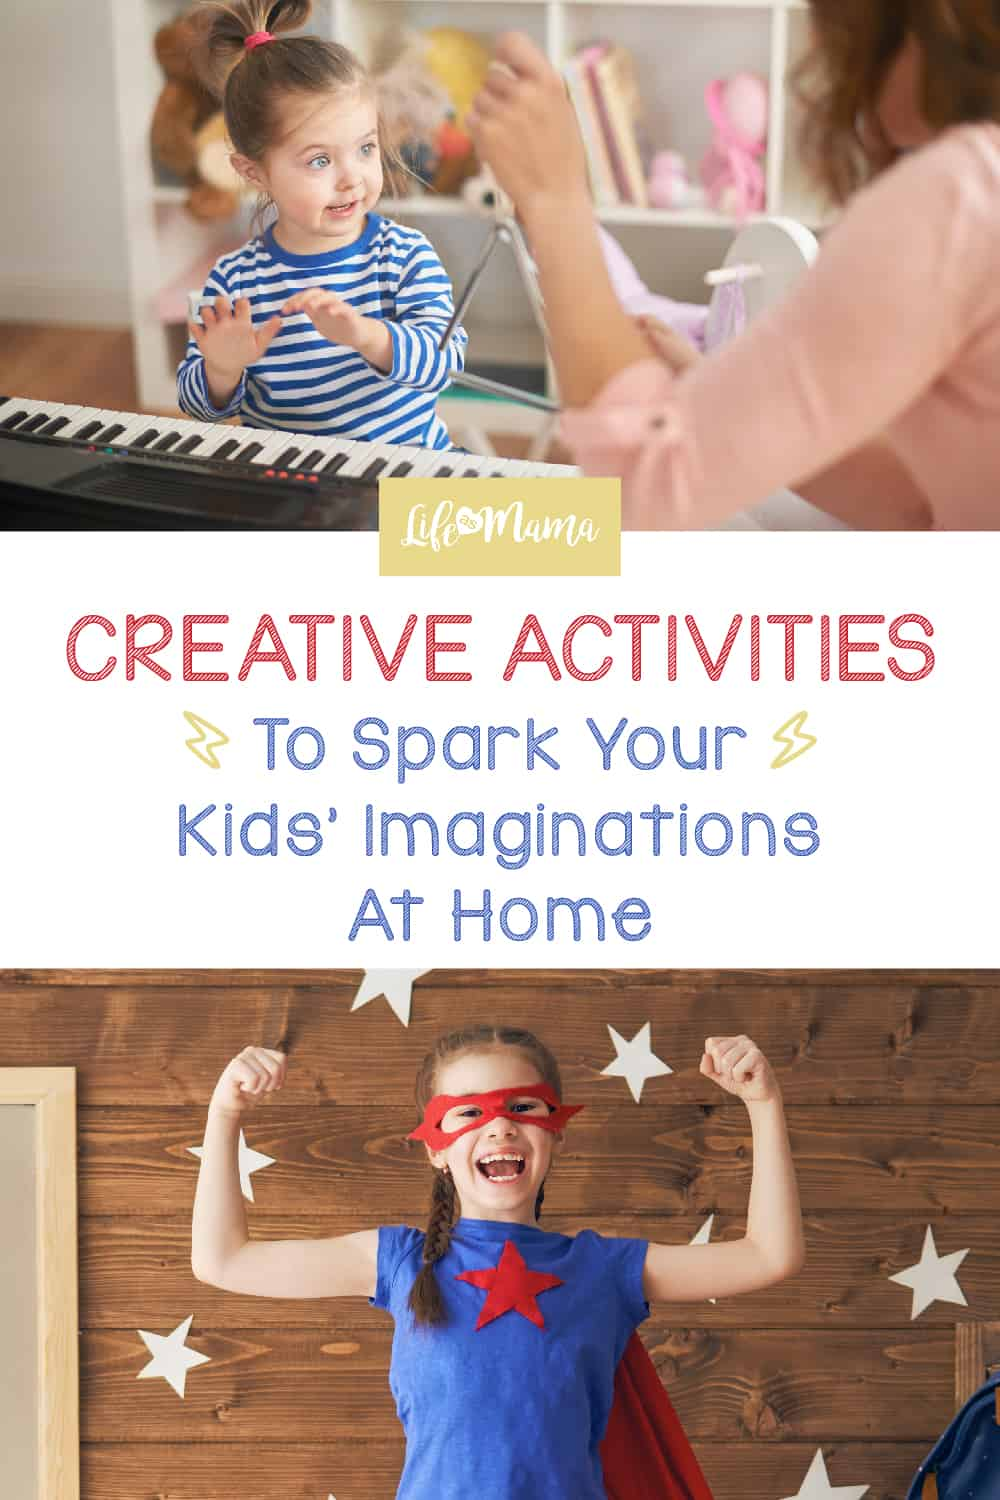 creative indoor activities imagination at home